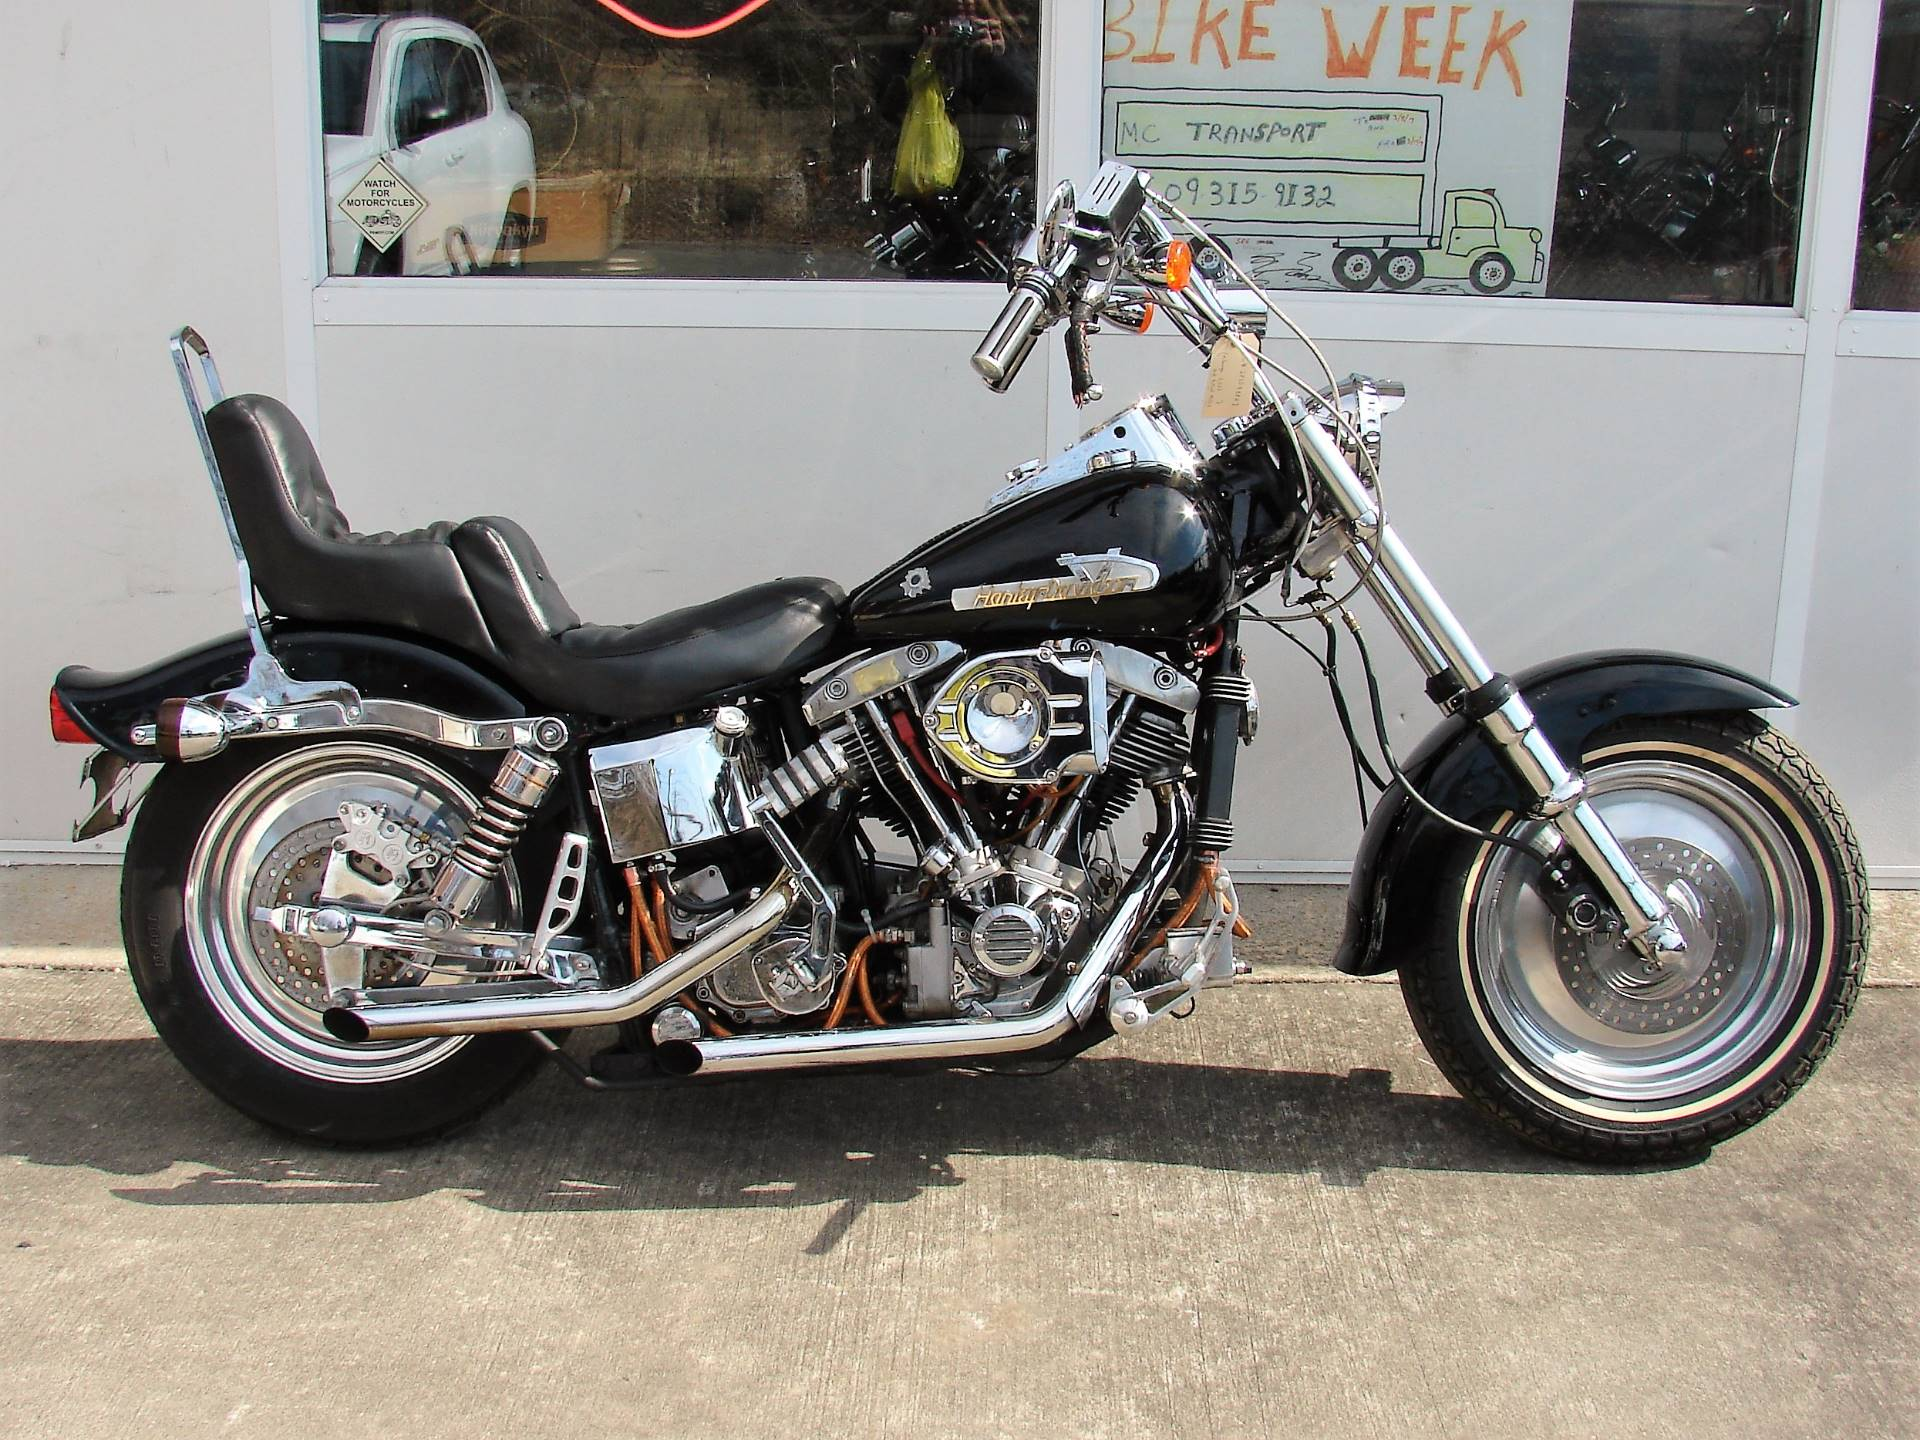 1977 Harley-Davidson Shovel Head  FXS-1200 in Williamstown, New Jersey - Photo 6